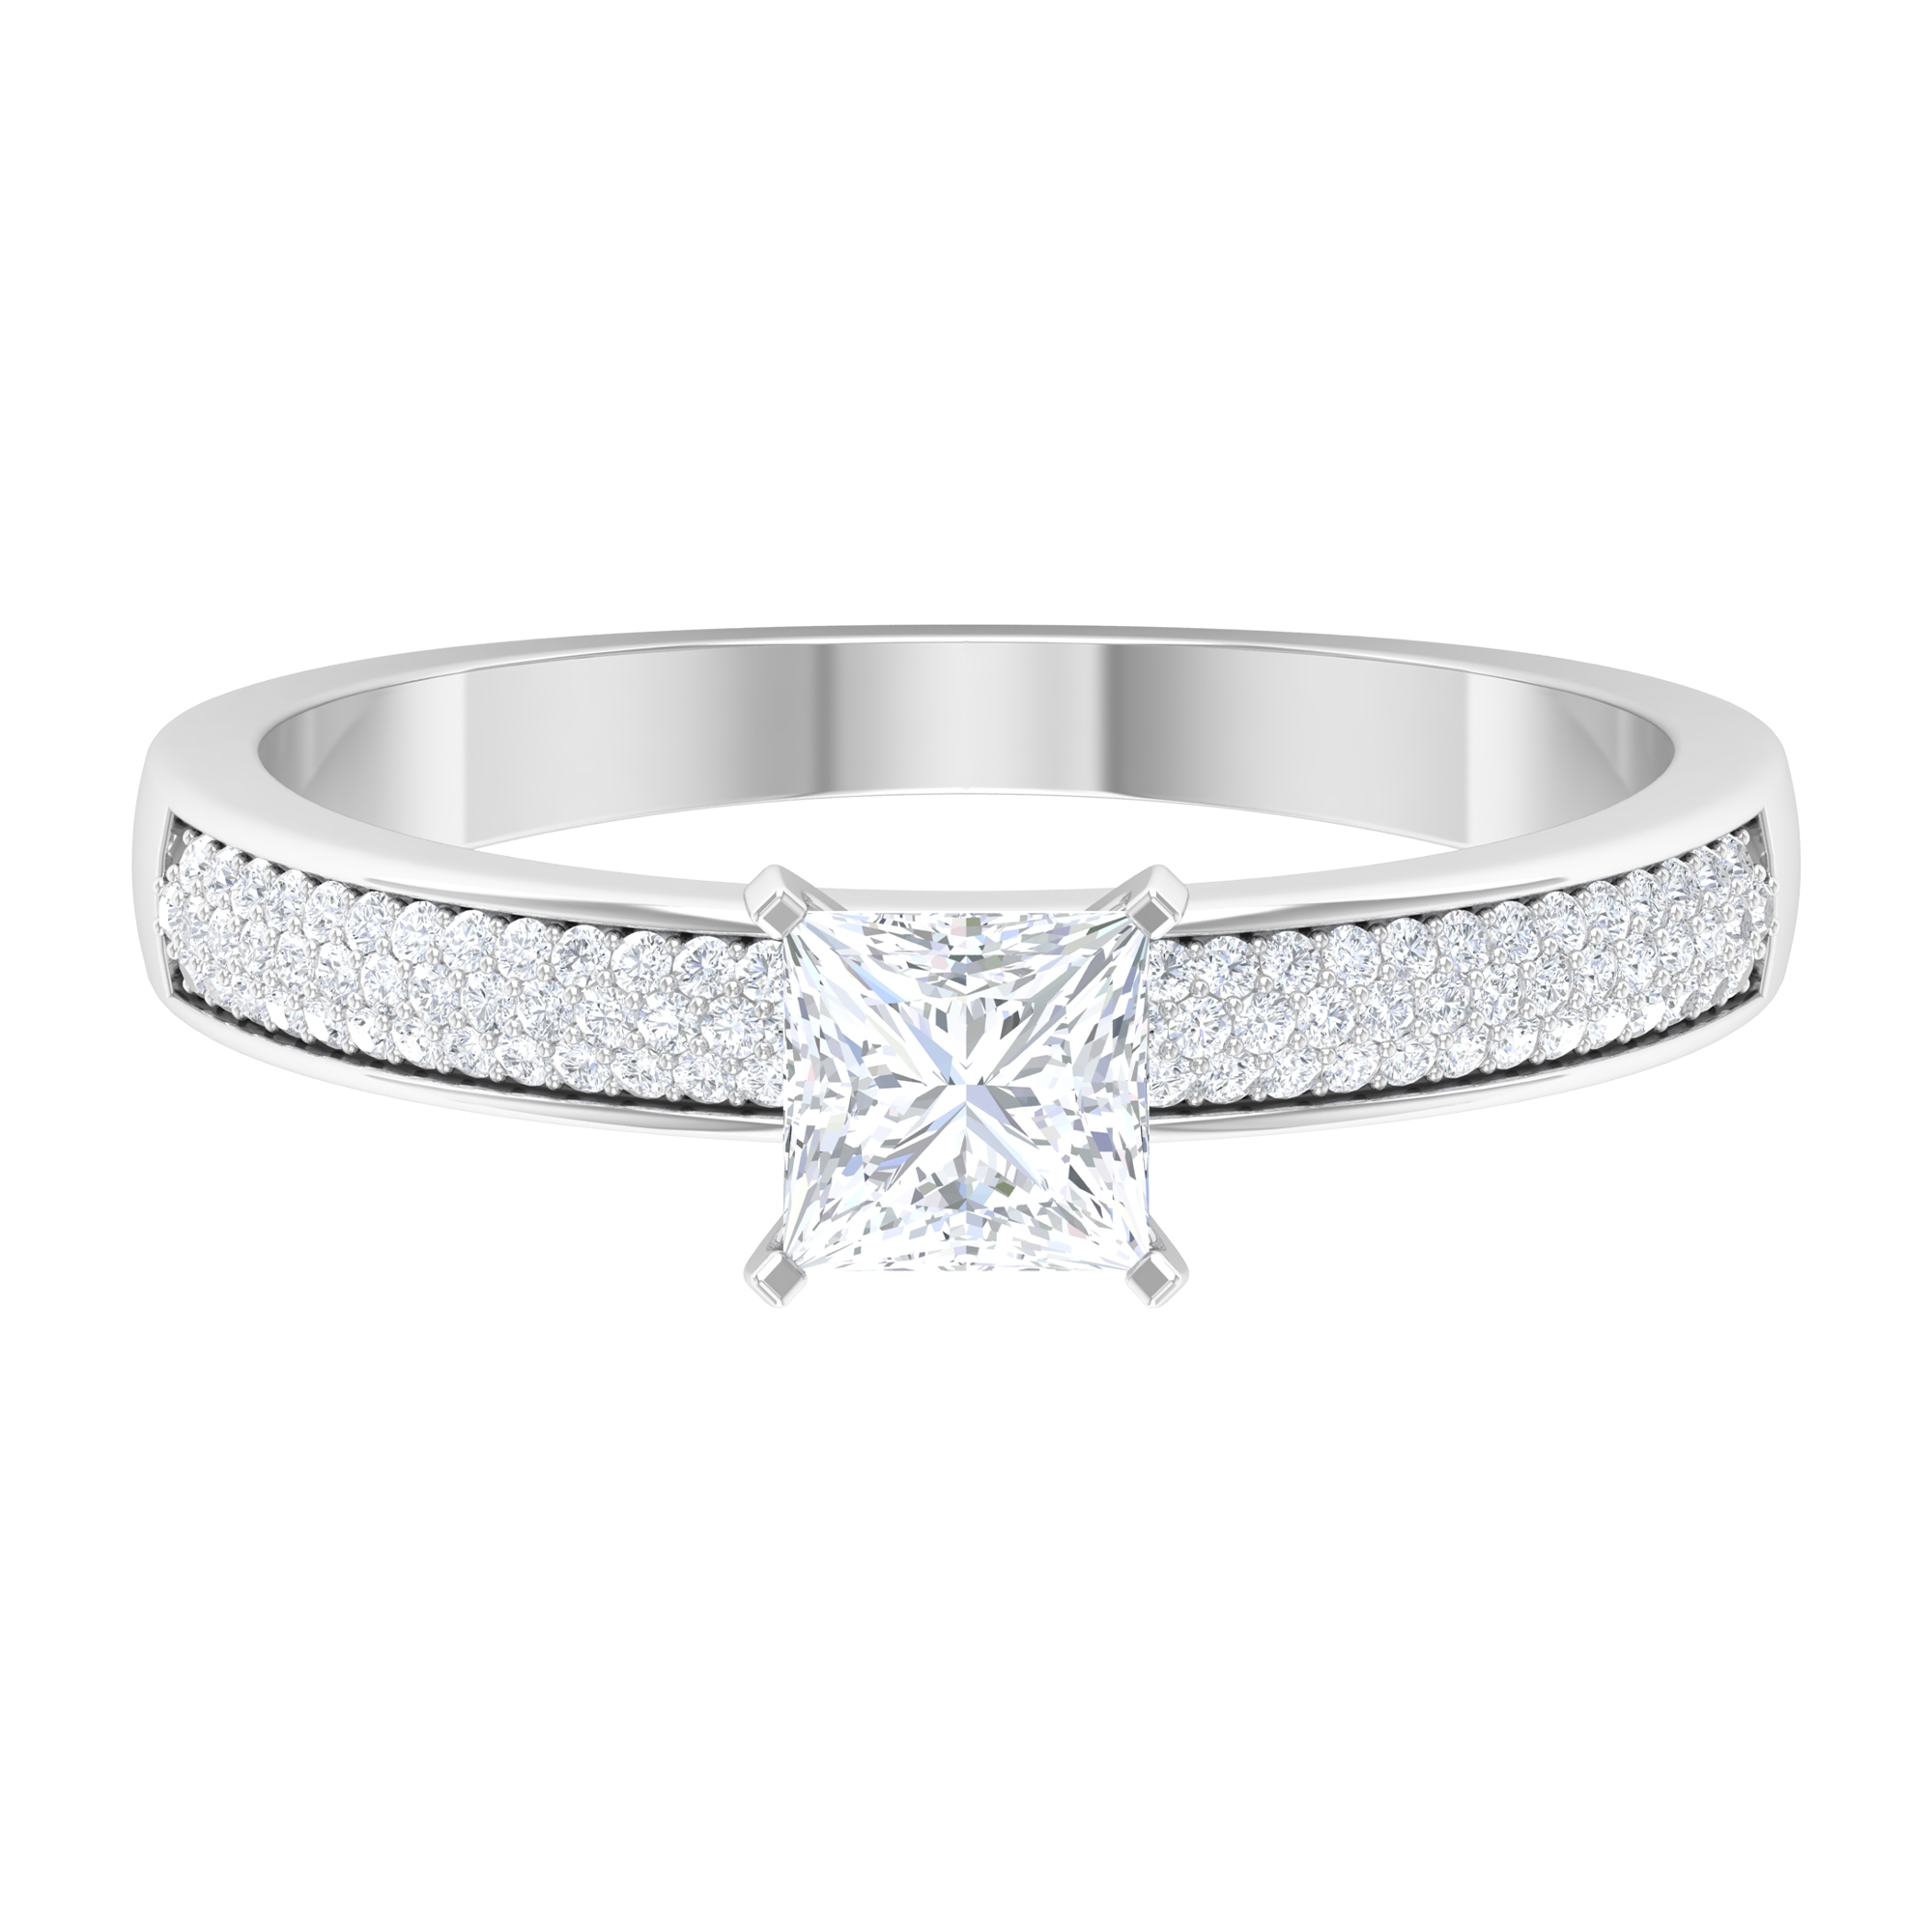 4.5X4.5 MM Princess Cut Diamond Solitaire Ring with Side Stones in 4 Prong Setting For Women